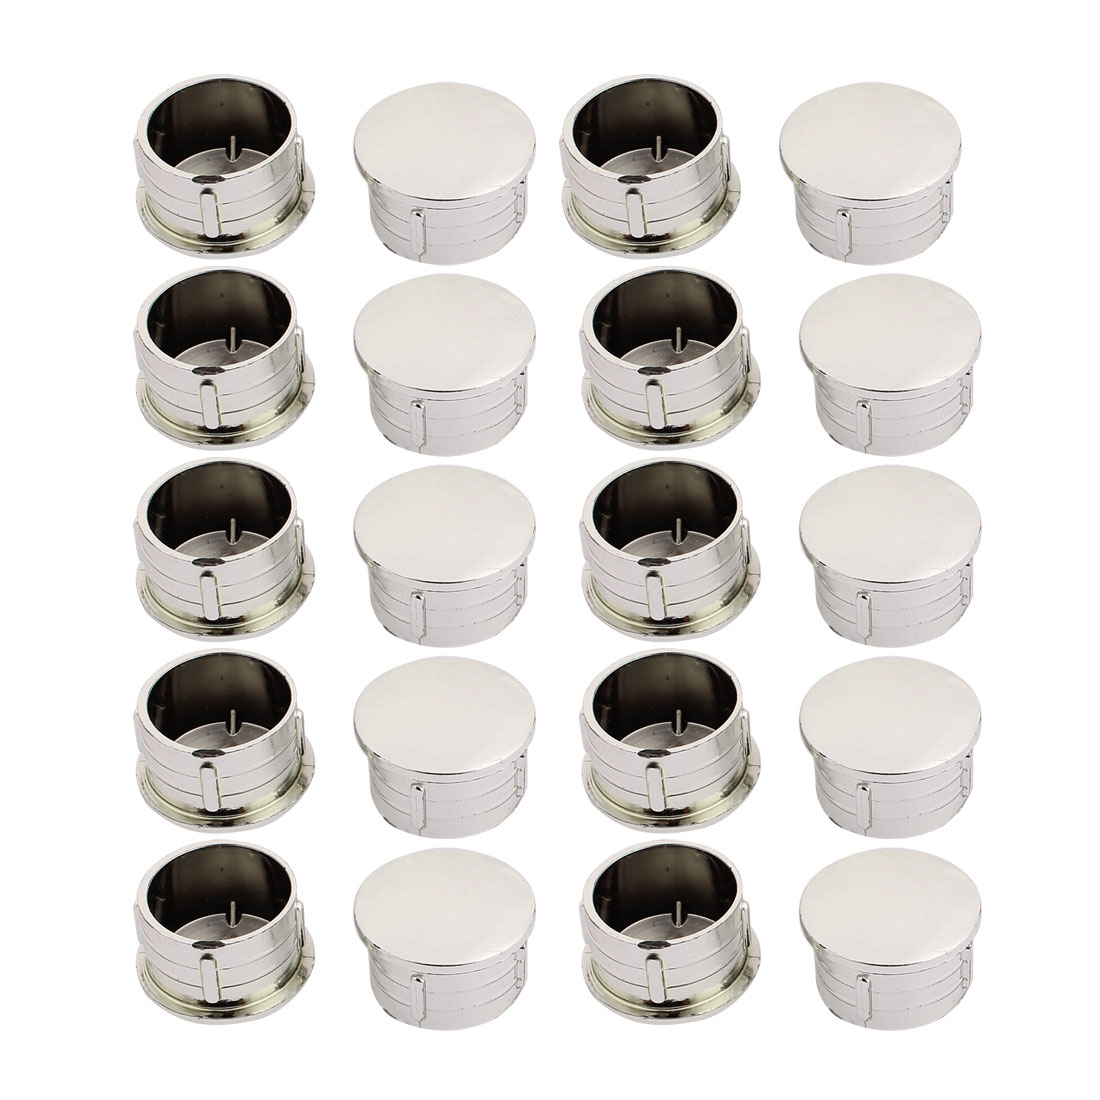 Furniture Round Flush Mount Cable Connector Hole Covers 25mm Dia 20pcs